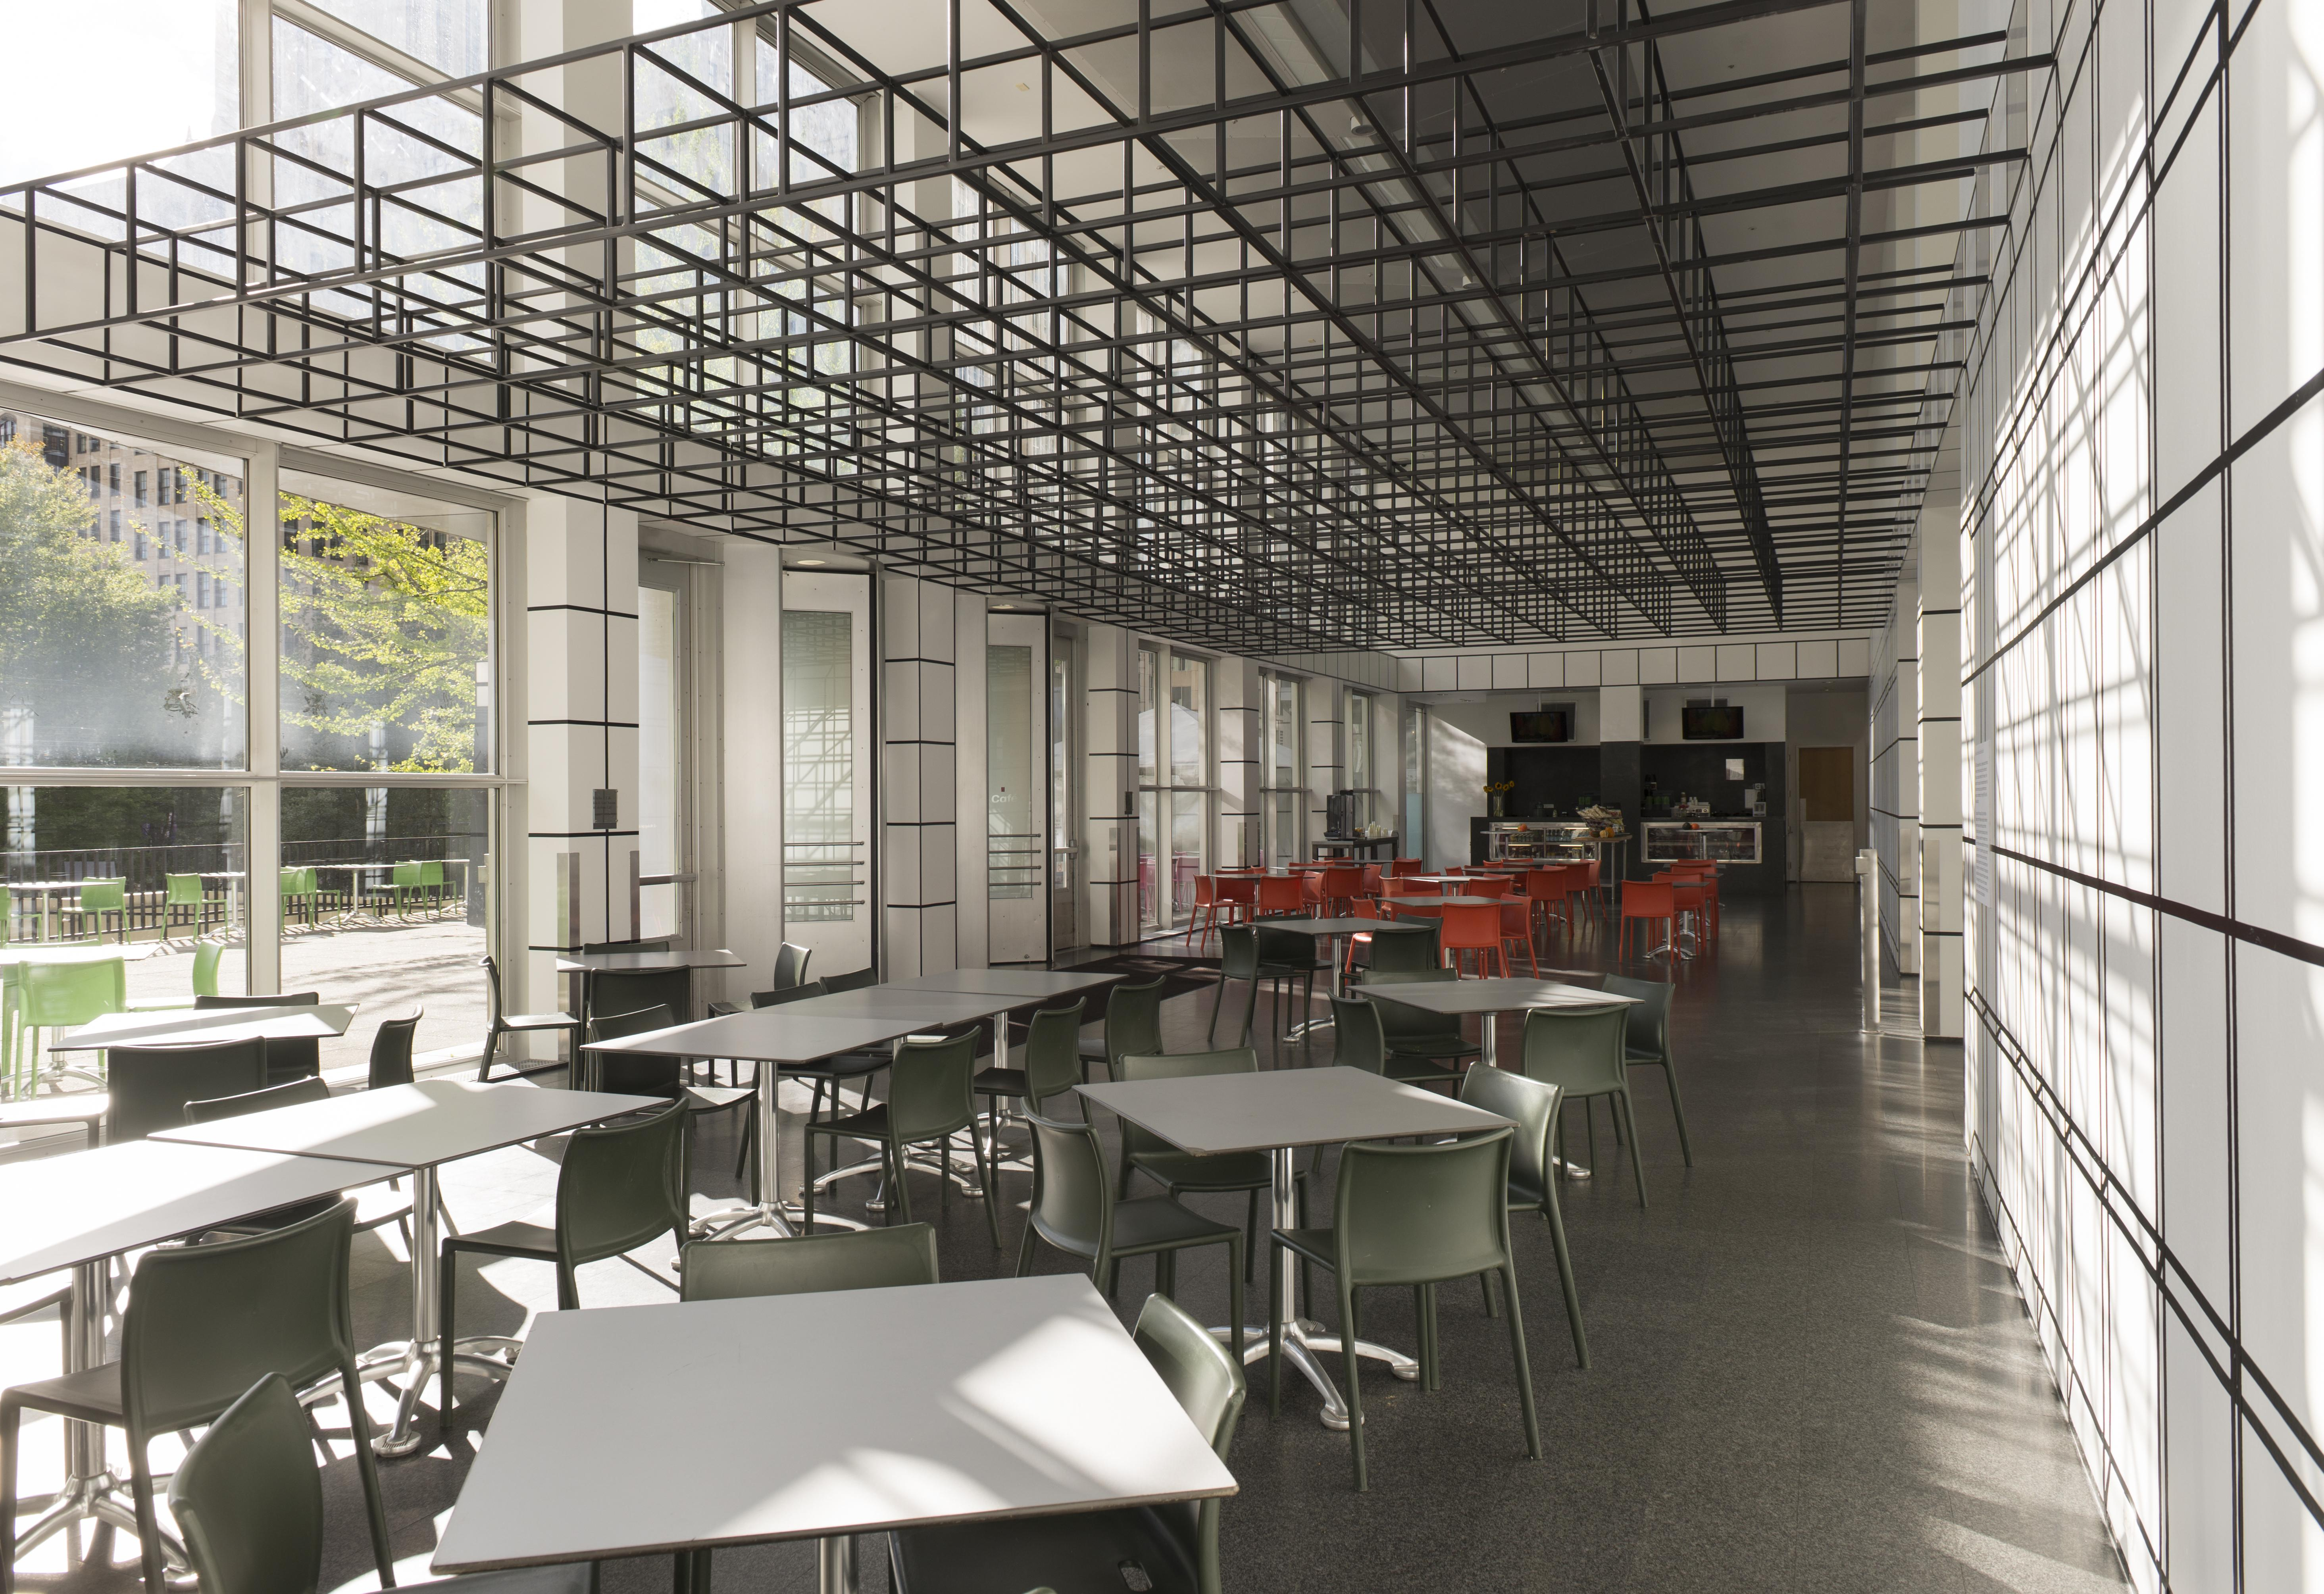 The MCA Cafe with chairs, tables, and a ceiling plane made of open-sided cubes that transitions into grids of illusionistic cubes on the walls